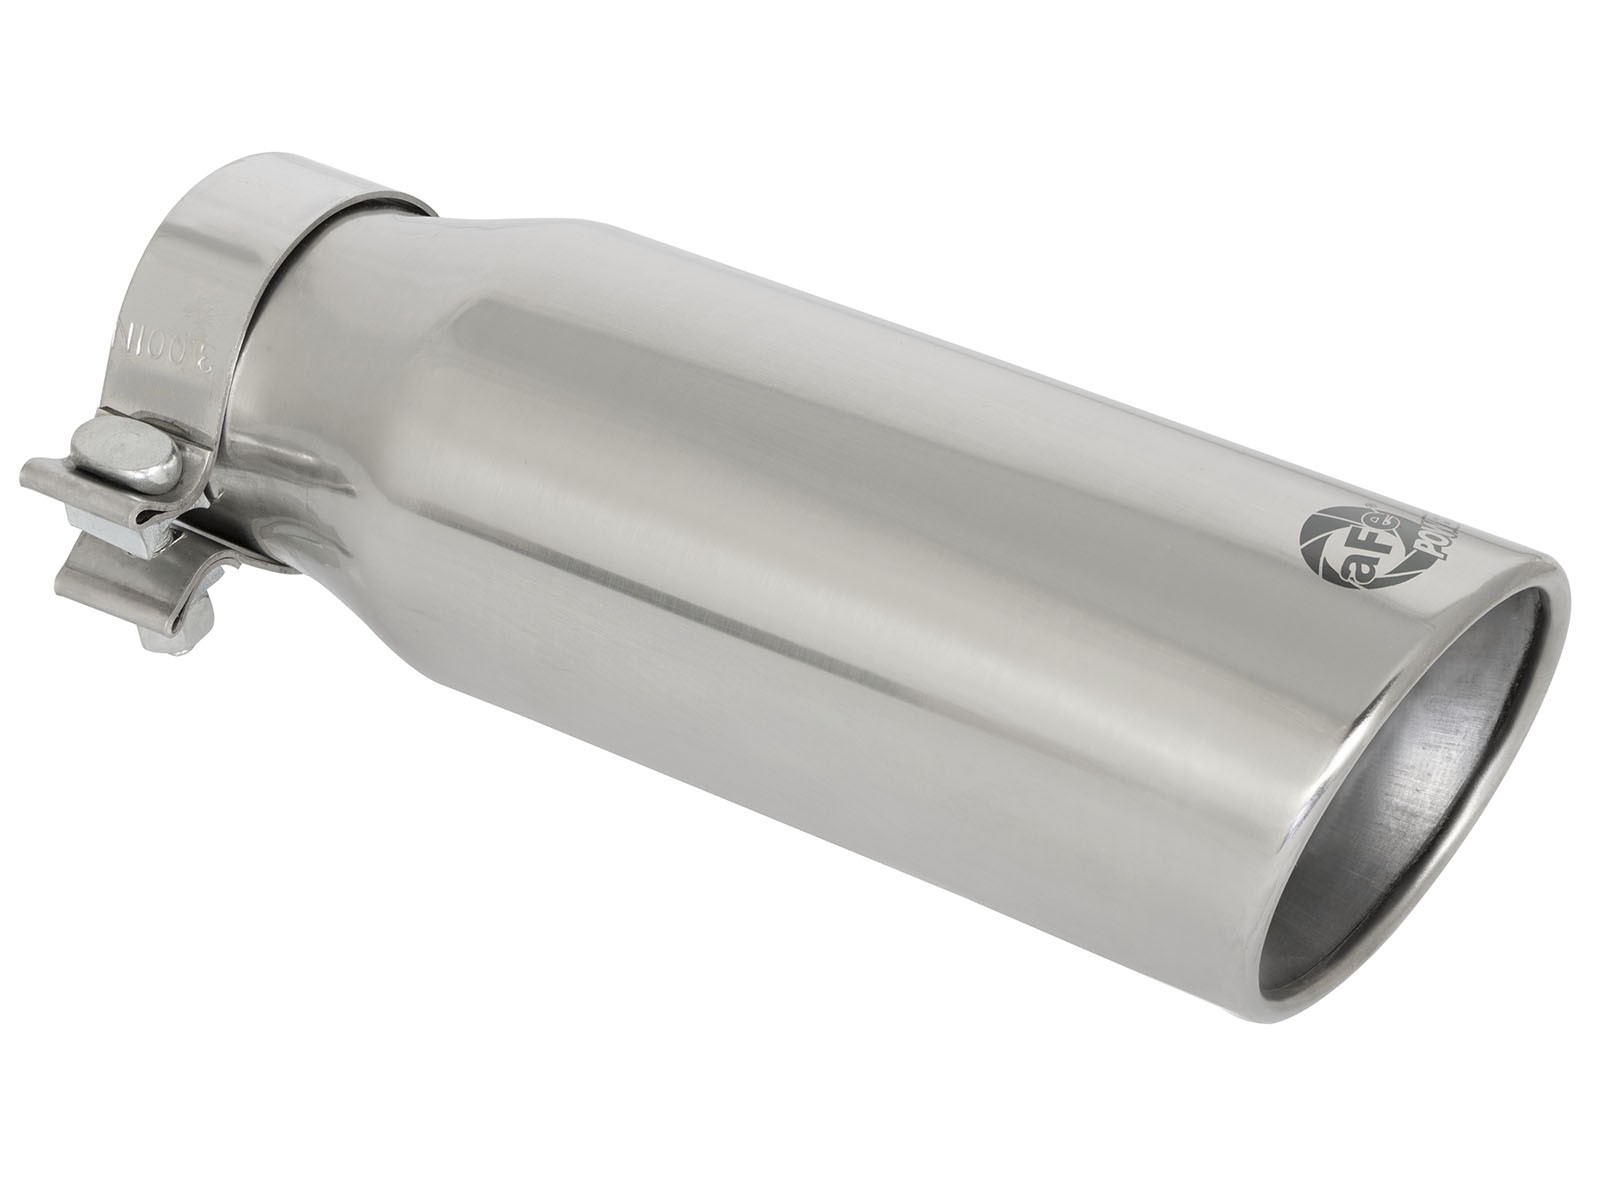 "aFe POWER 49T30404-P121 MACH Force-Xp 3"" 304 Stainless Steel Exhaust Tip"